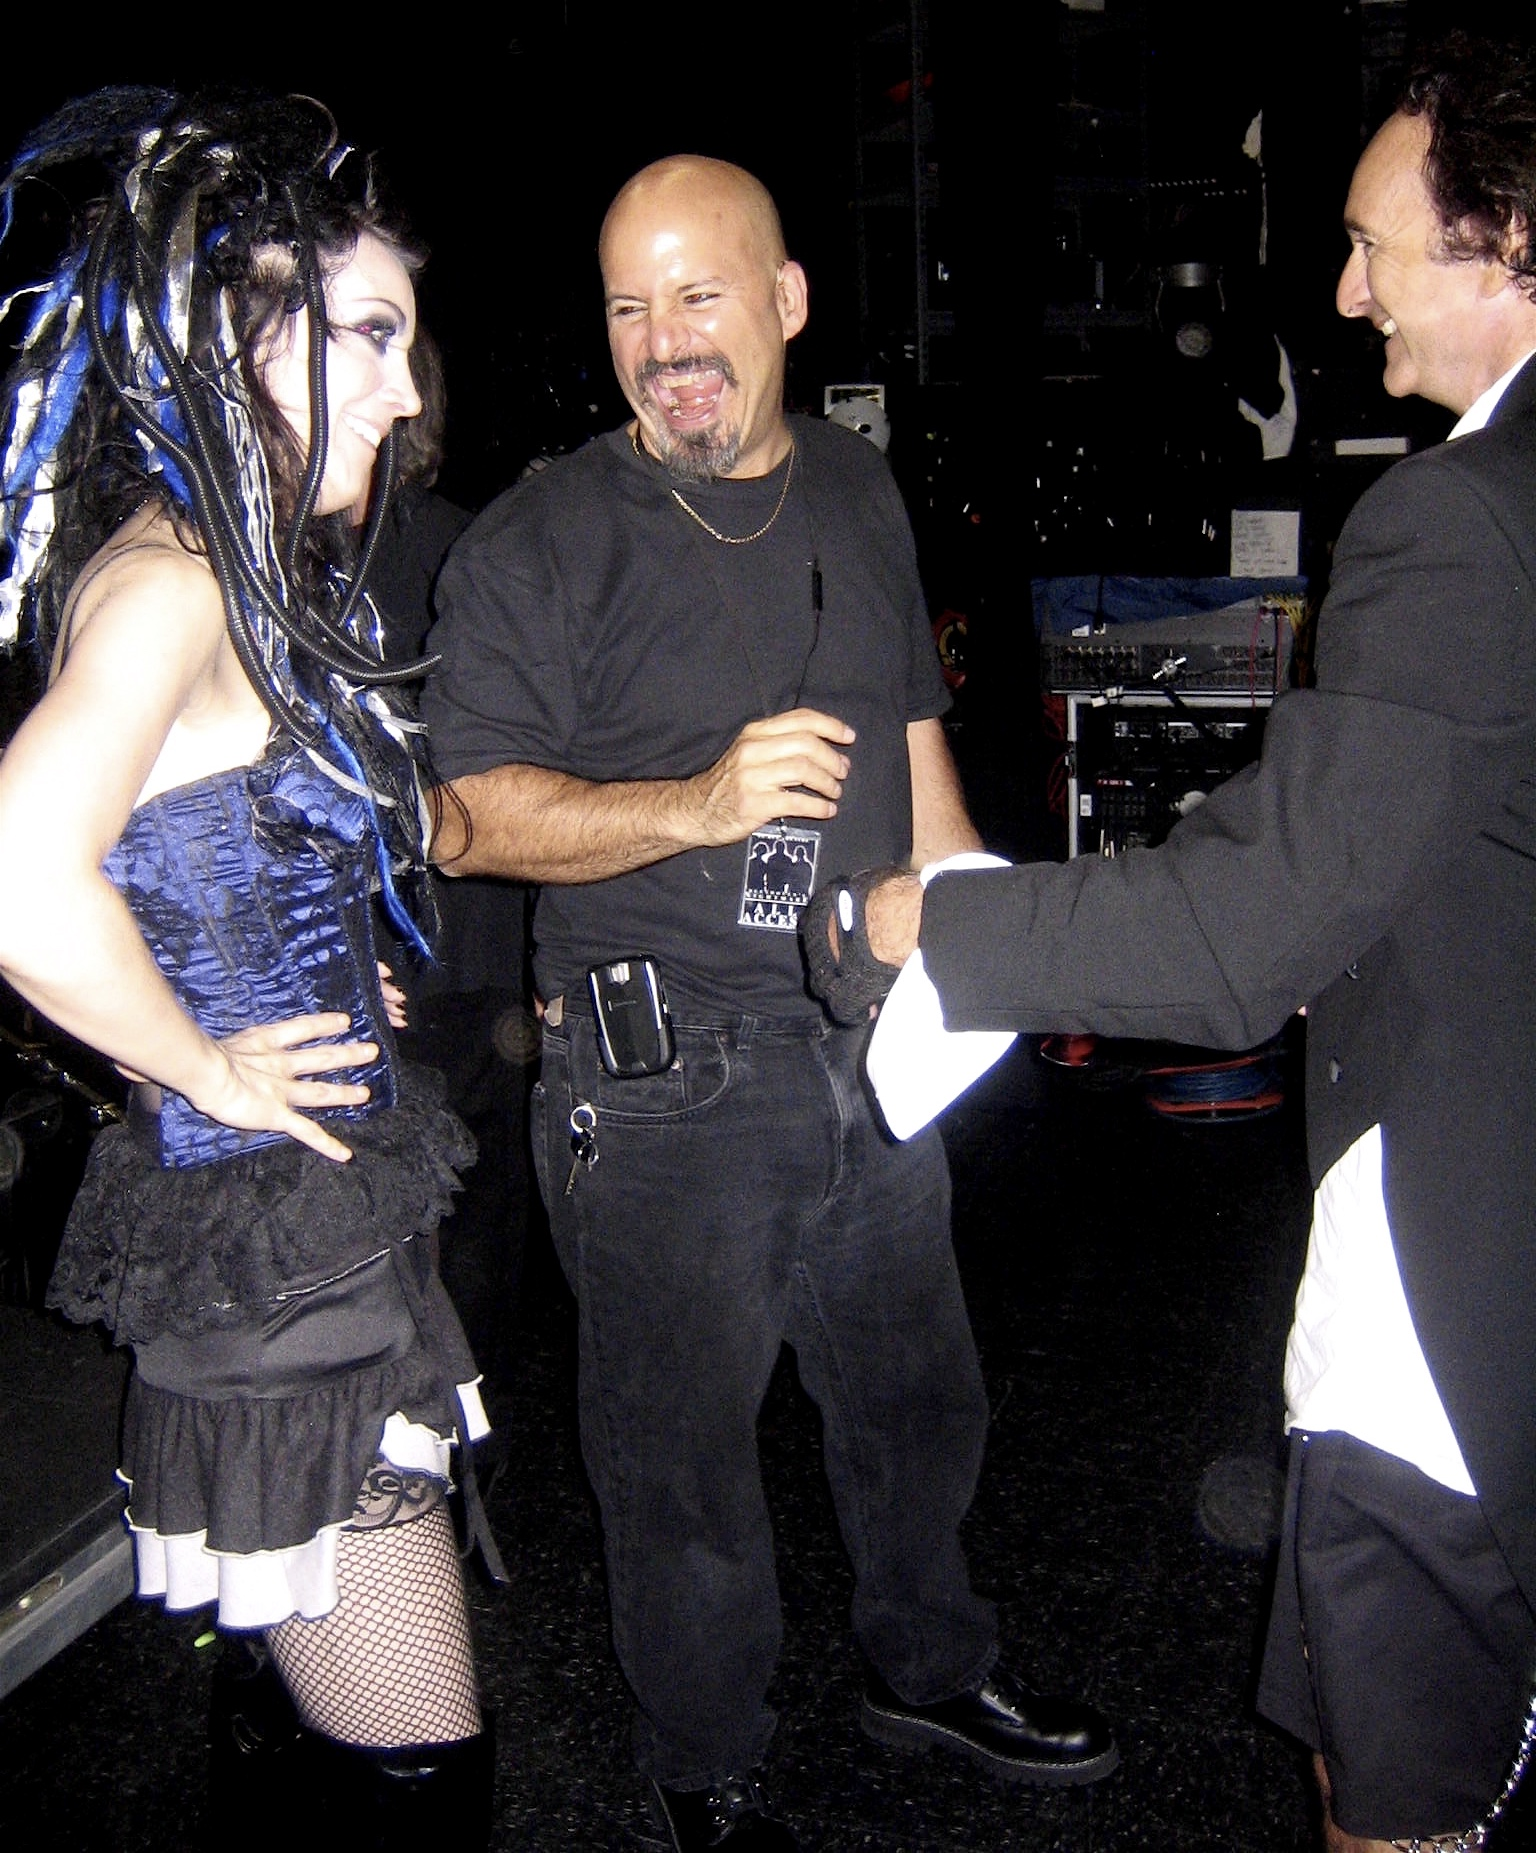 Rock artist has a laugh with Beethoven's Nightmare members Steve Longo and Ed Chevy backstage after GLAD & Sprint Relay's 2007 concert  Beethoven's Nightmare Live At The El Rey , produced by Bob Hiltermann, John Drouillard, and Natalie Drouillard.  Photo by Natalie Drouillard.